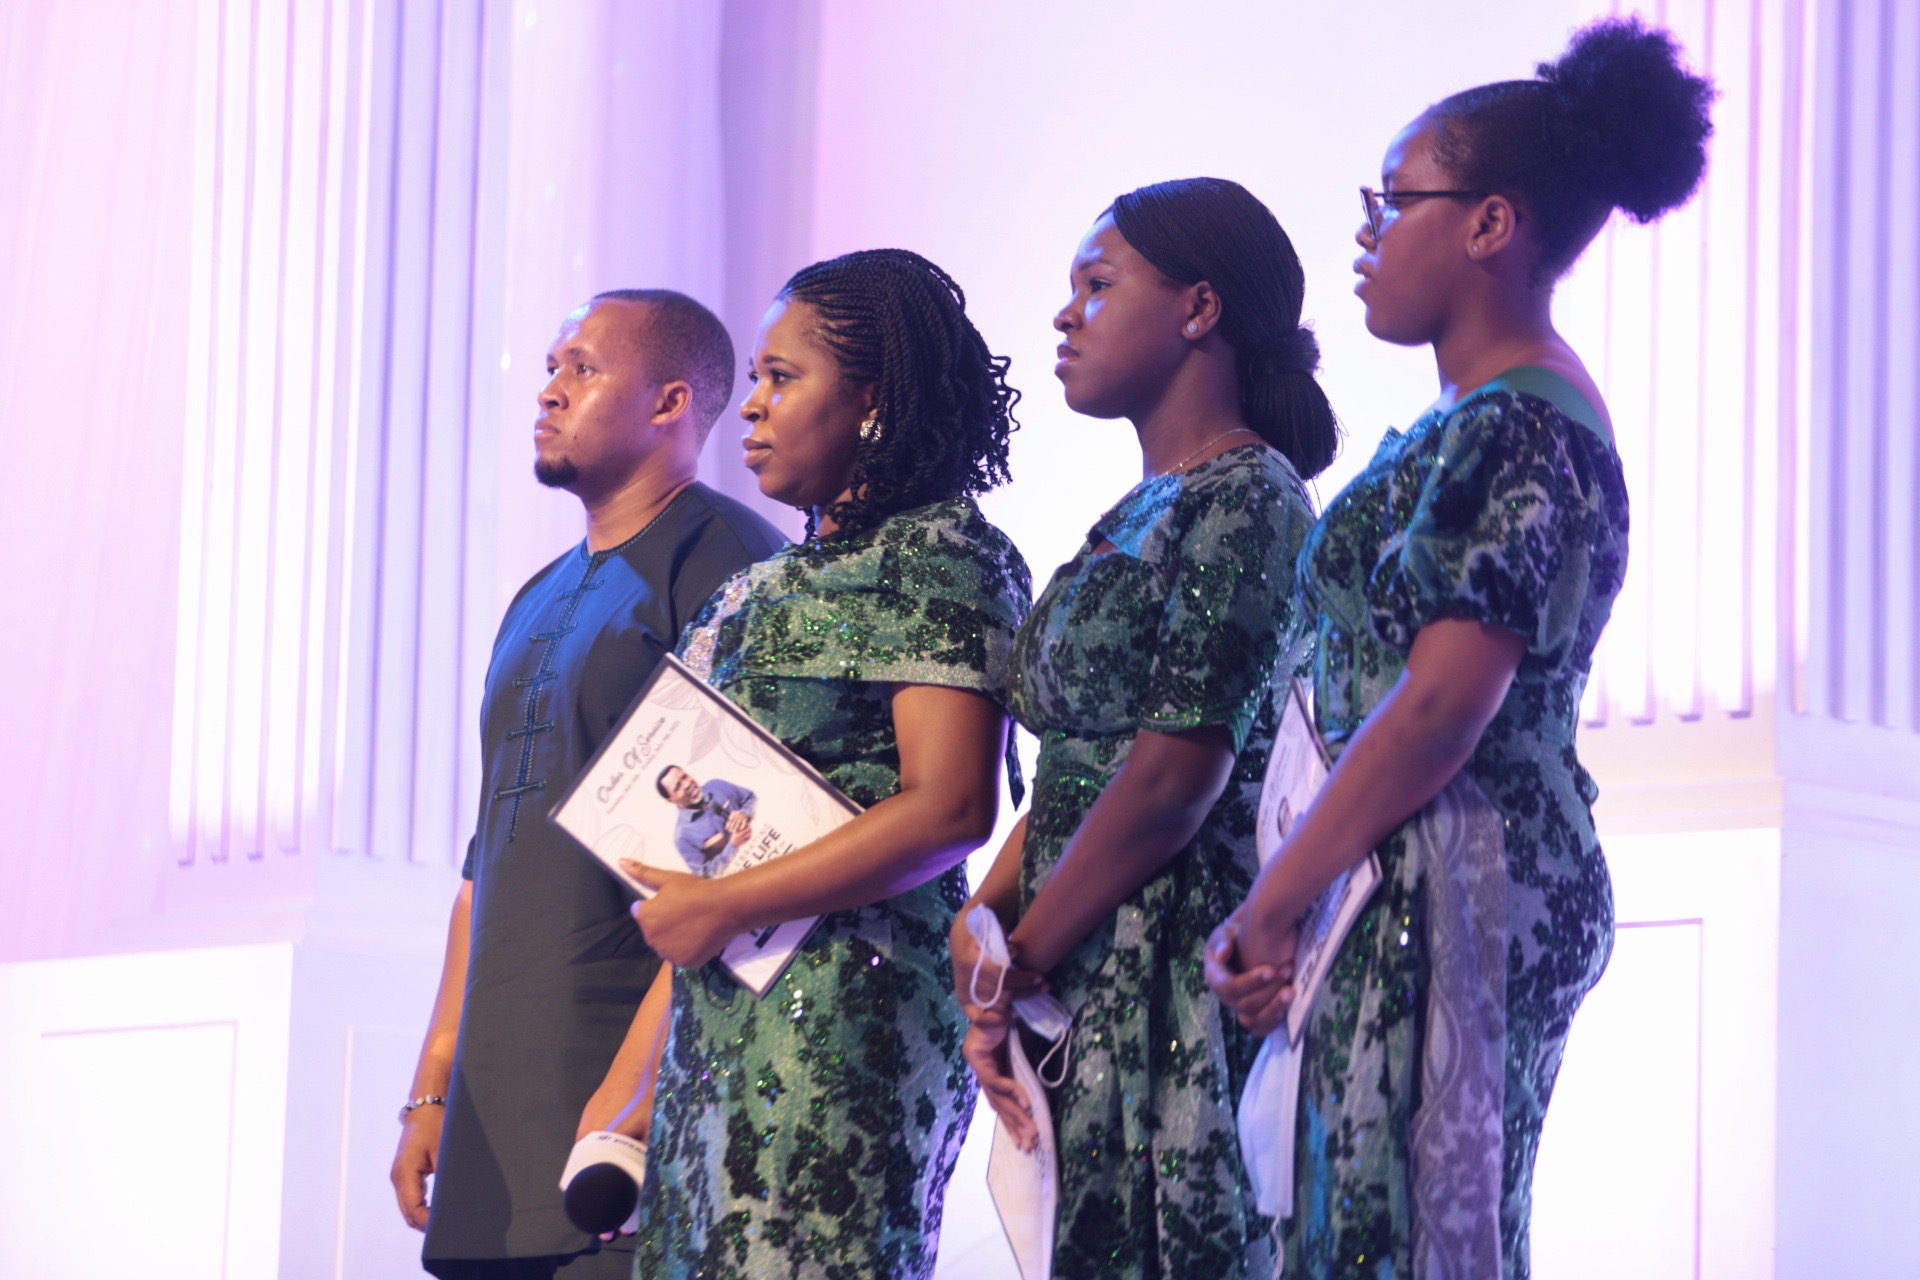 Late TB Joshua's daughters and son-in-law at All Day Service Tribute at Synagogue Church of All Nations. Photo by Ayodele Efunla